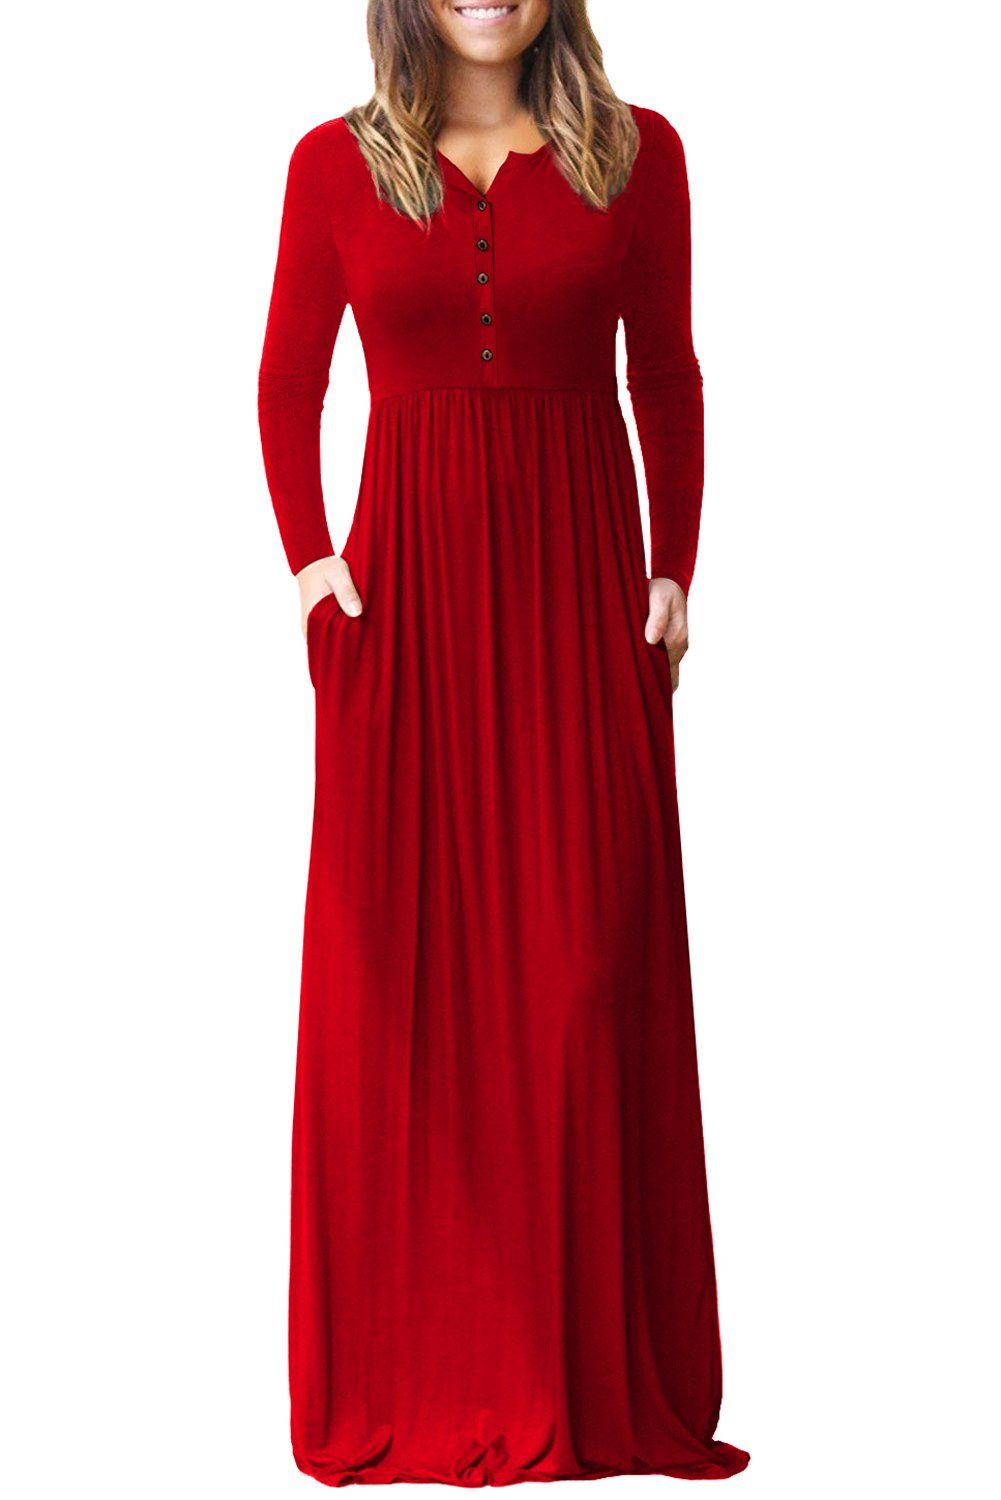 5dacfd23723 Robe Longue Rouge Bouton Decontracte Manches Longues Pas Cher  www.modebuy.com  Modebuy